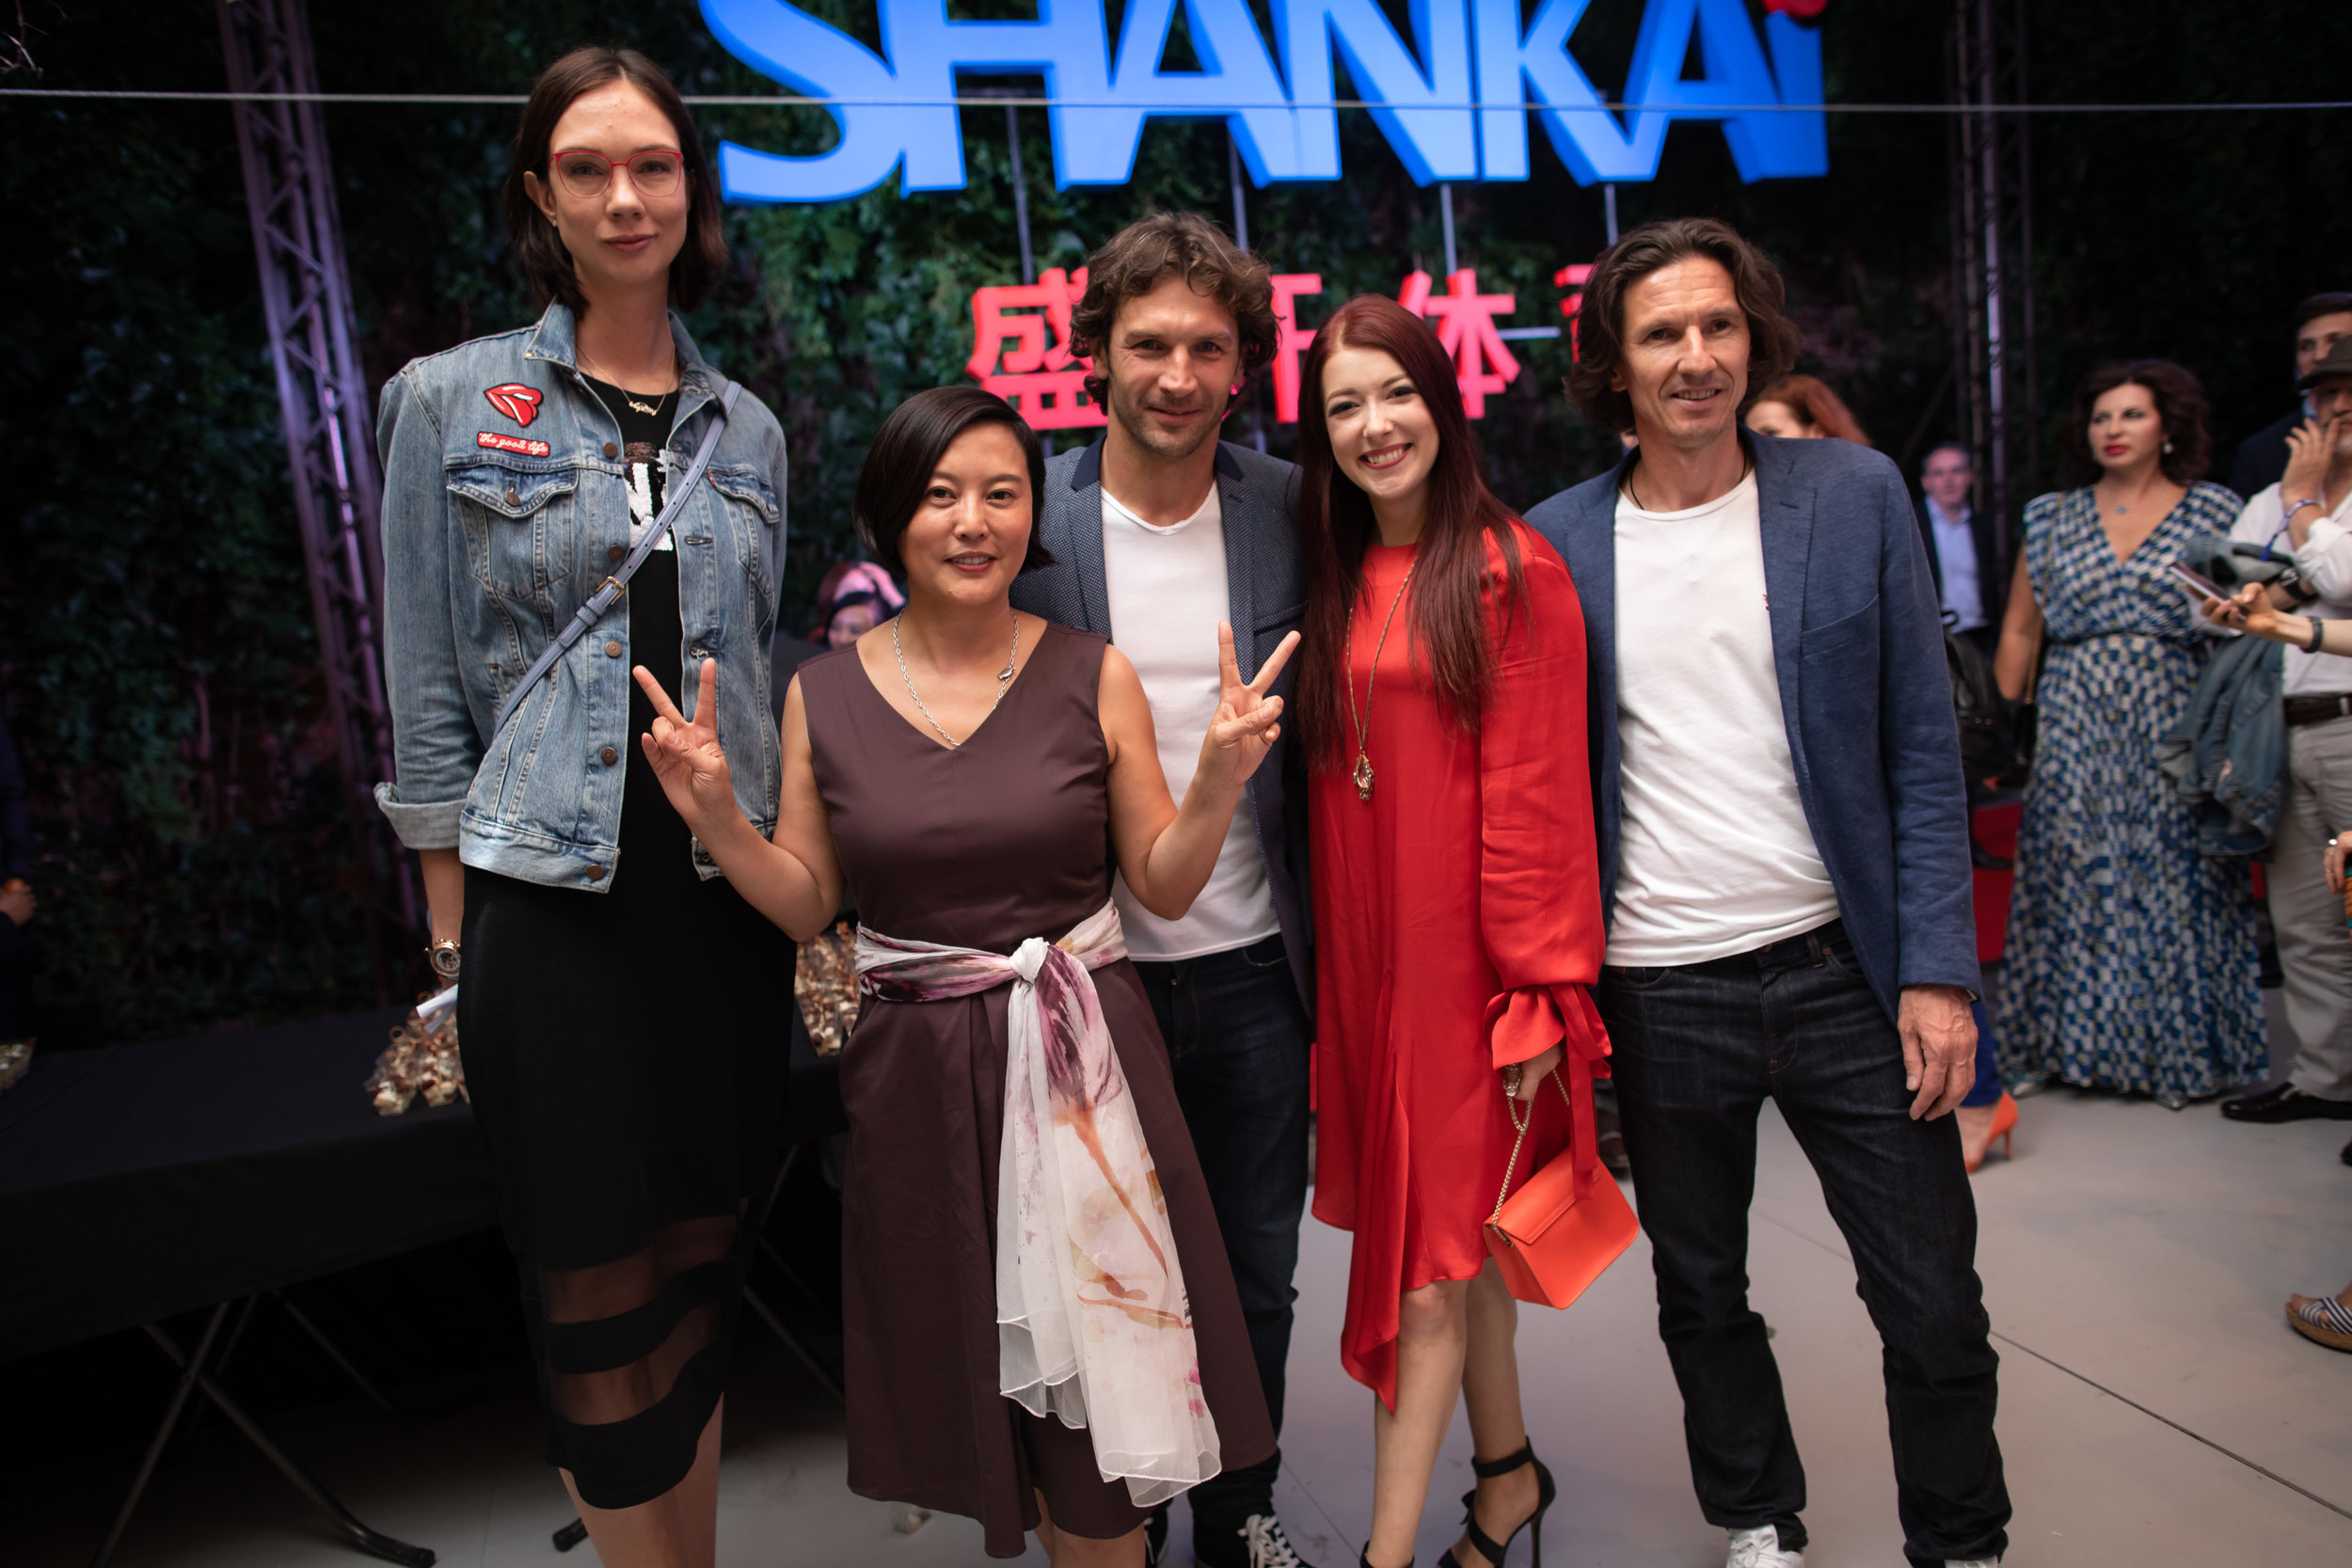 When Chinese sports marketing agency Shankai Sports asked Eventica to organise a special party night in Moscow for them, Community Football was the perfect fit -